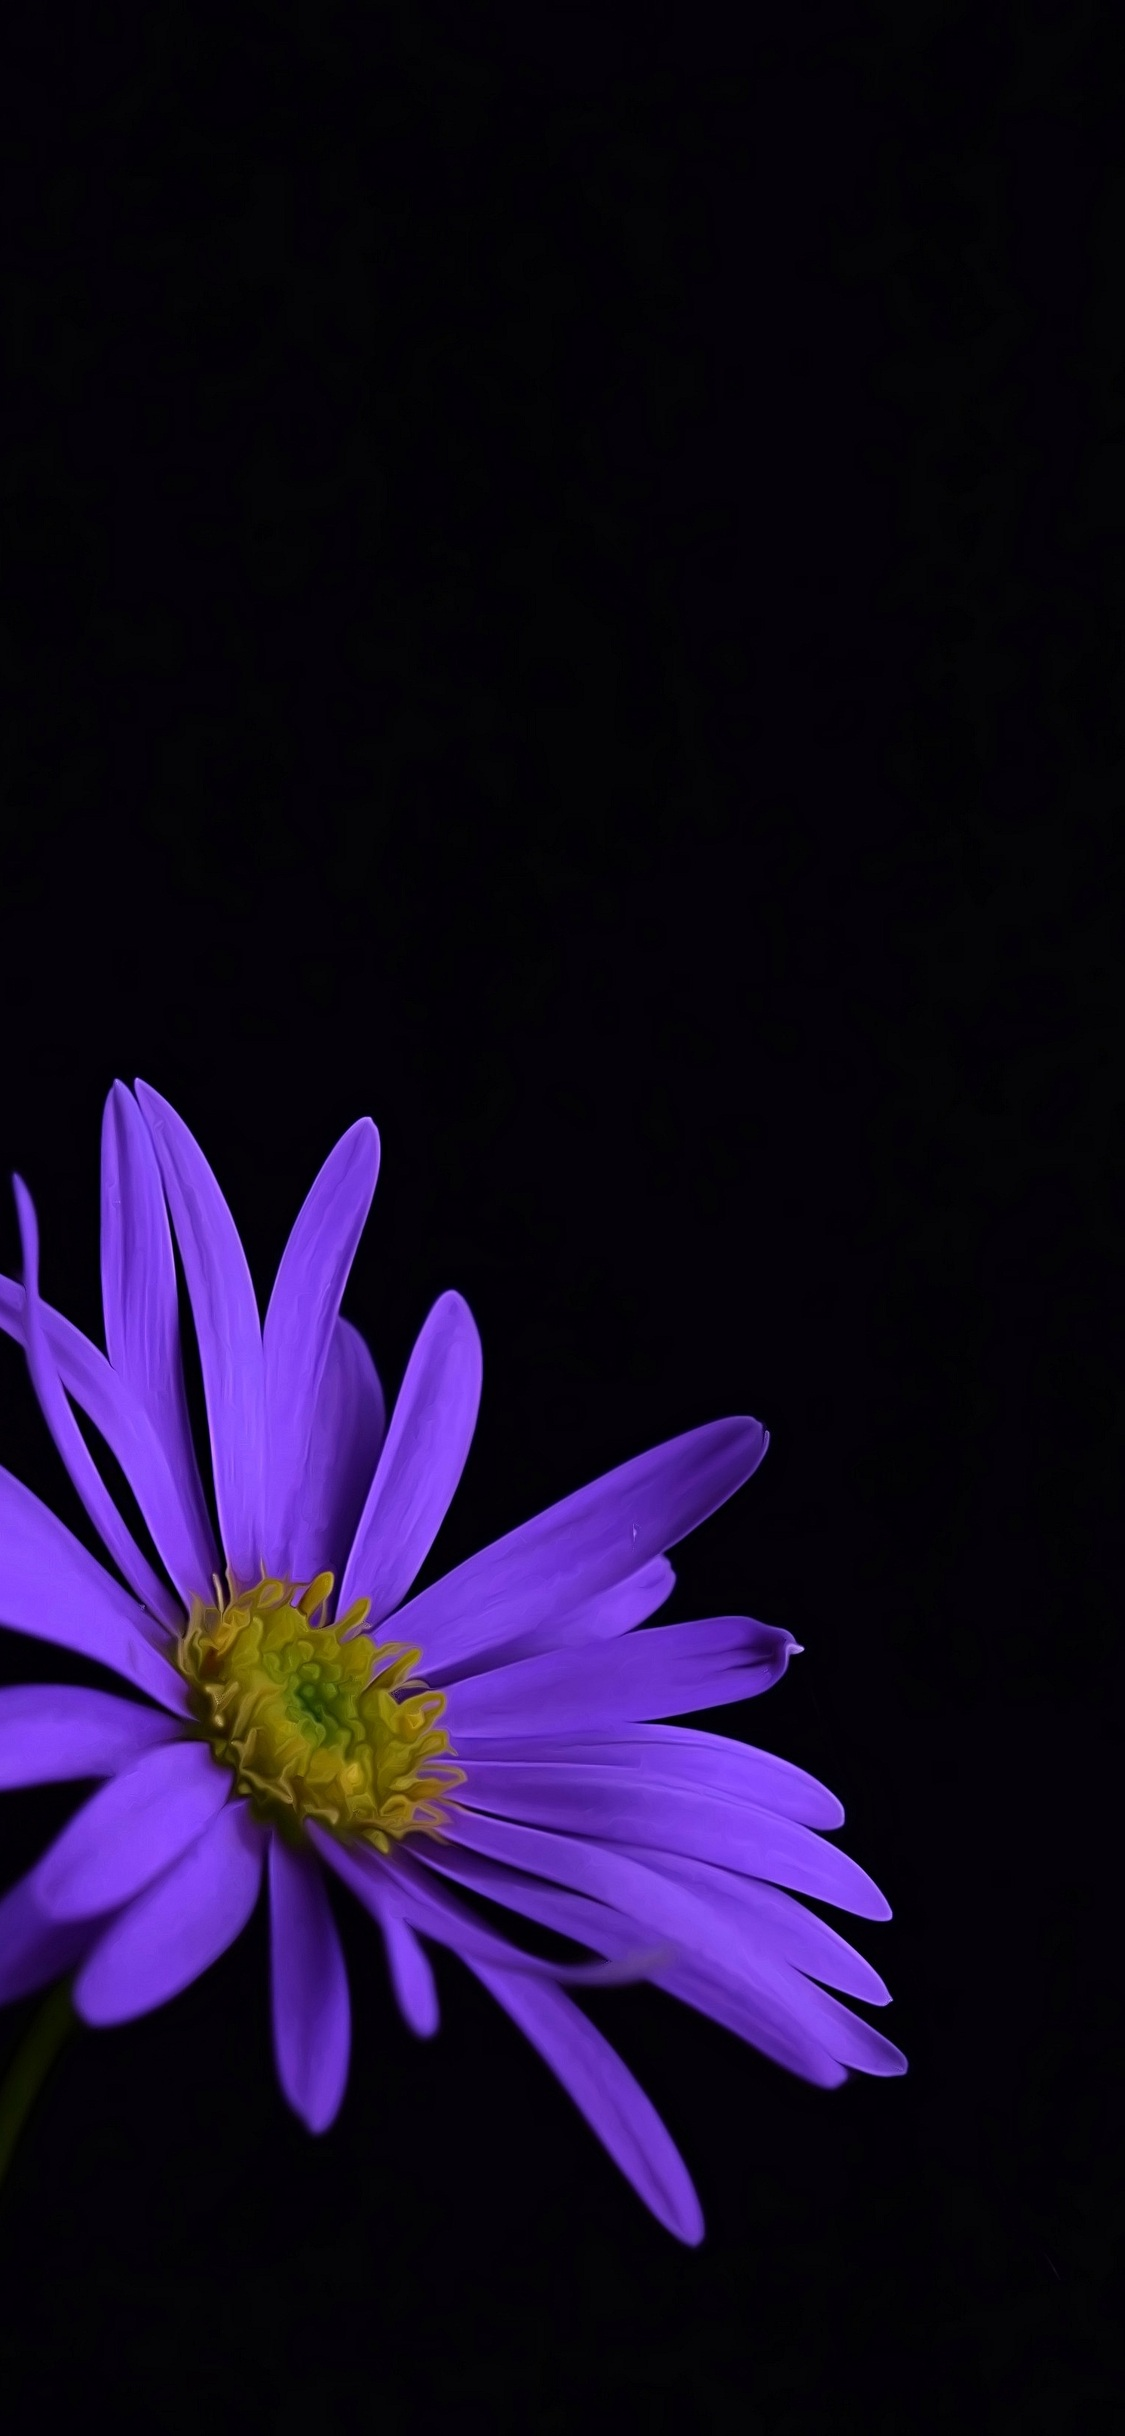 Purple Flower Blossom (Iphone XS,Iphone 10,Iphone X)